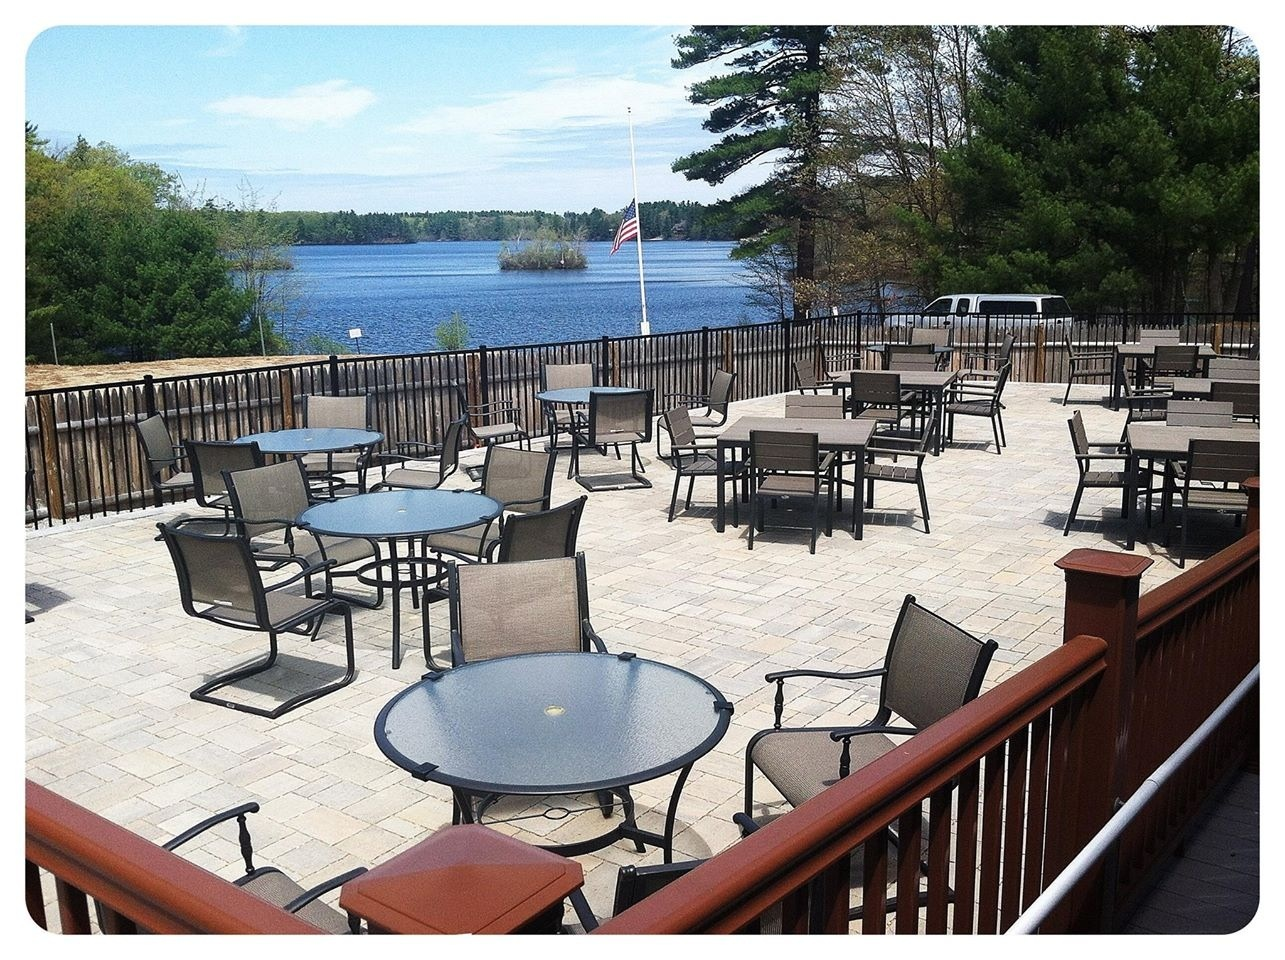 Outside patio area with tables and chairs overlooking a lake